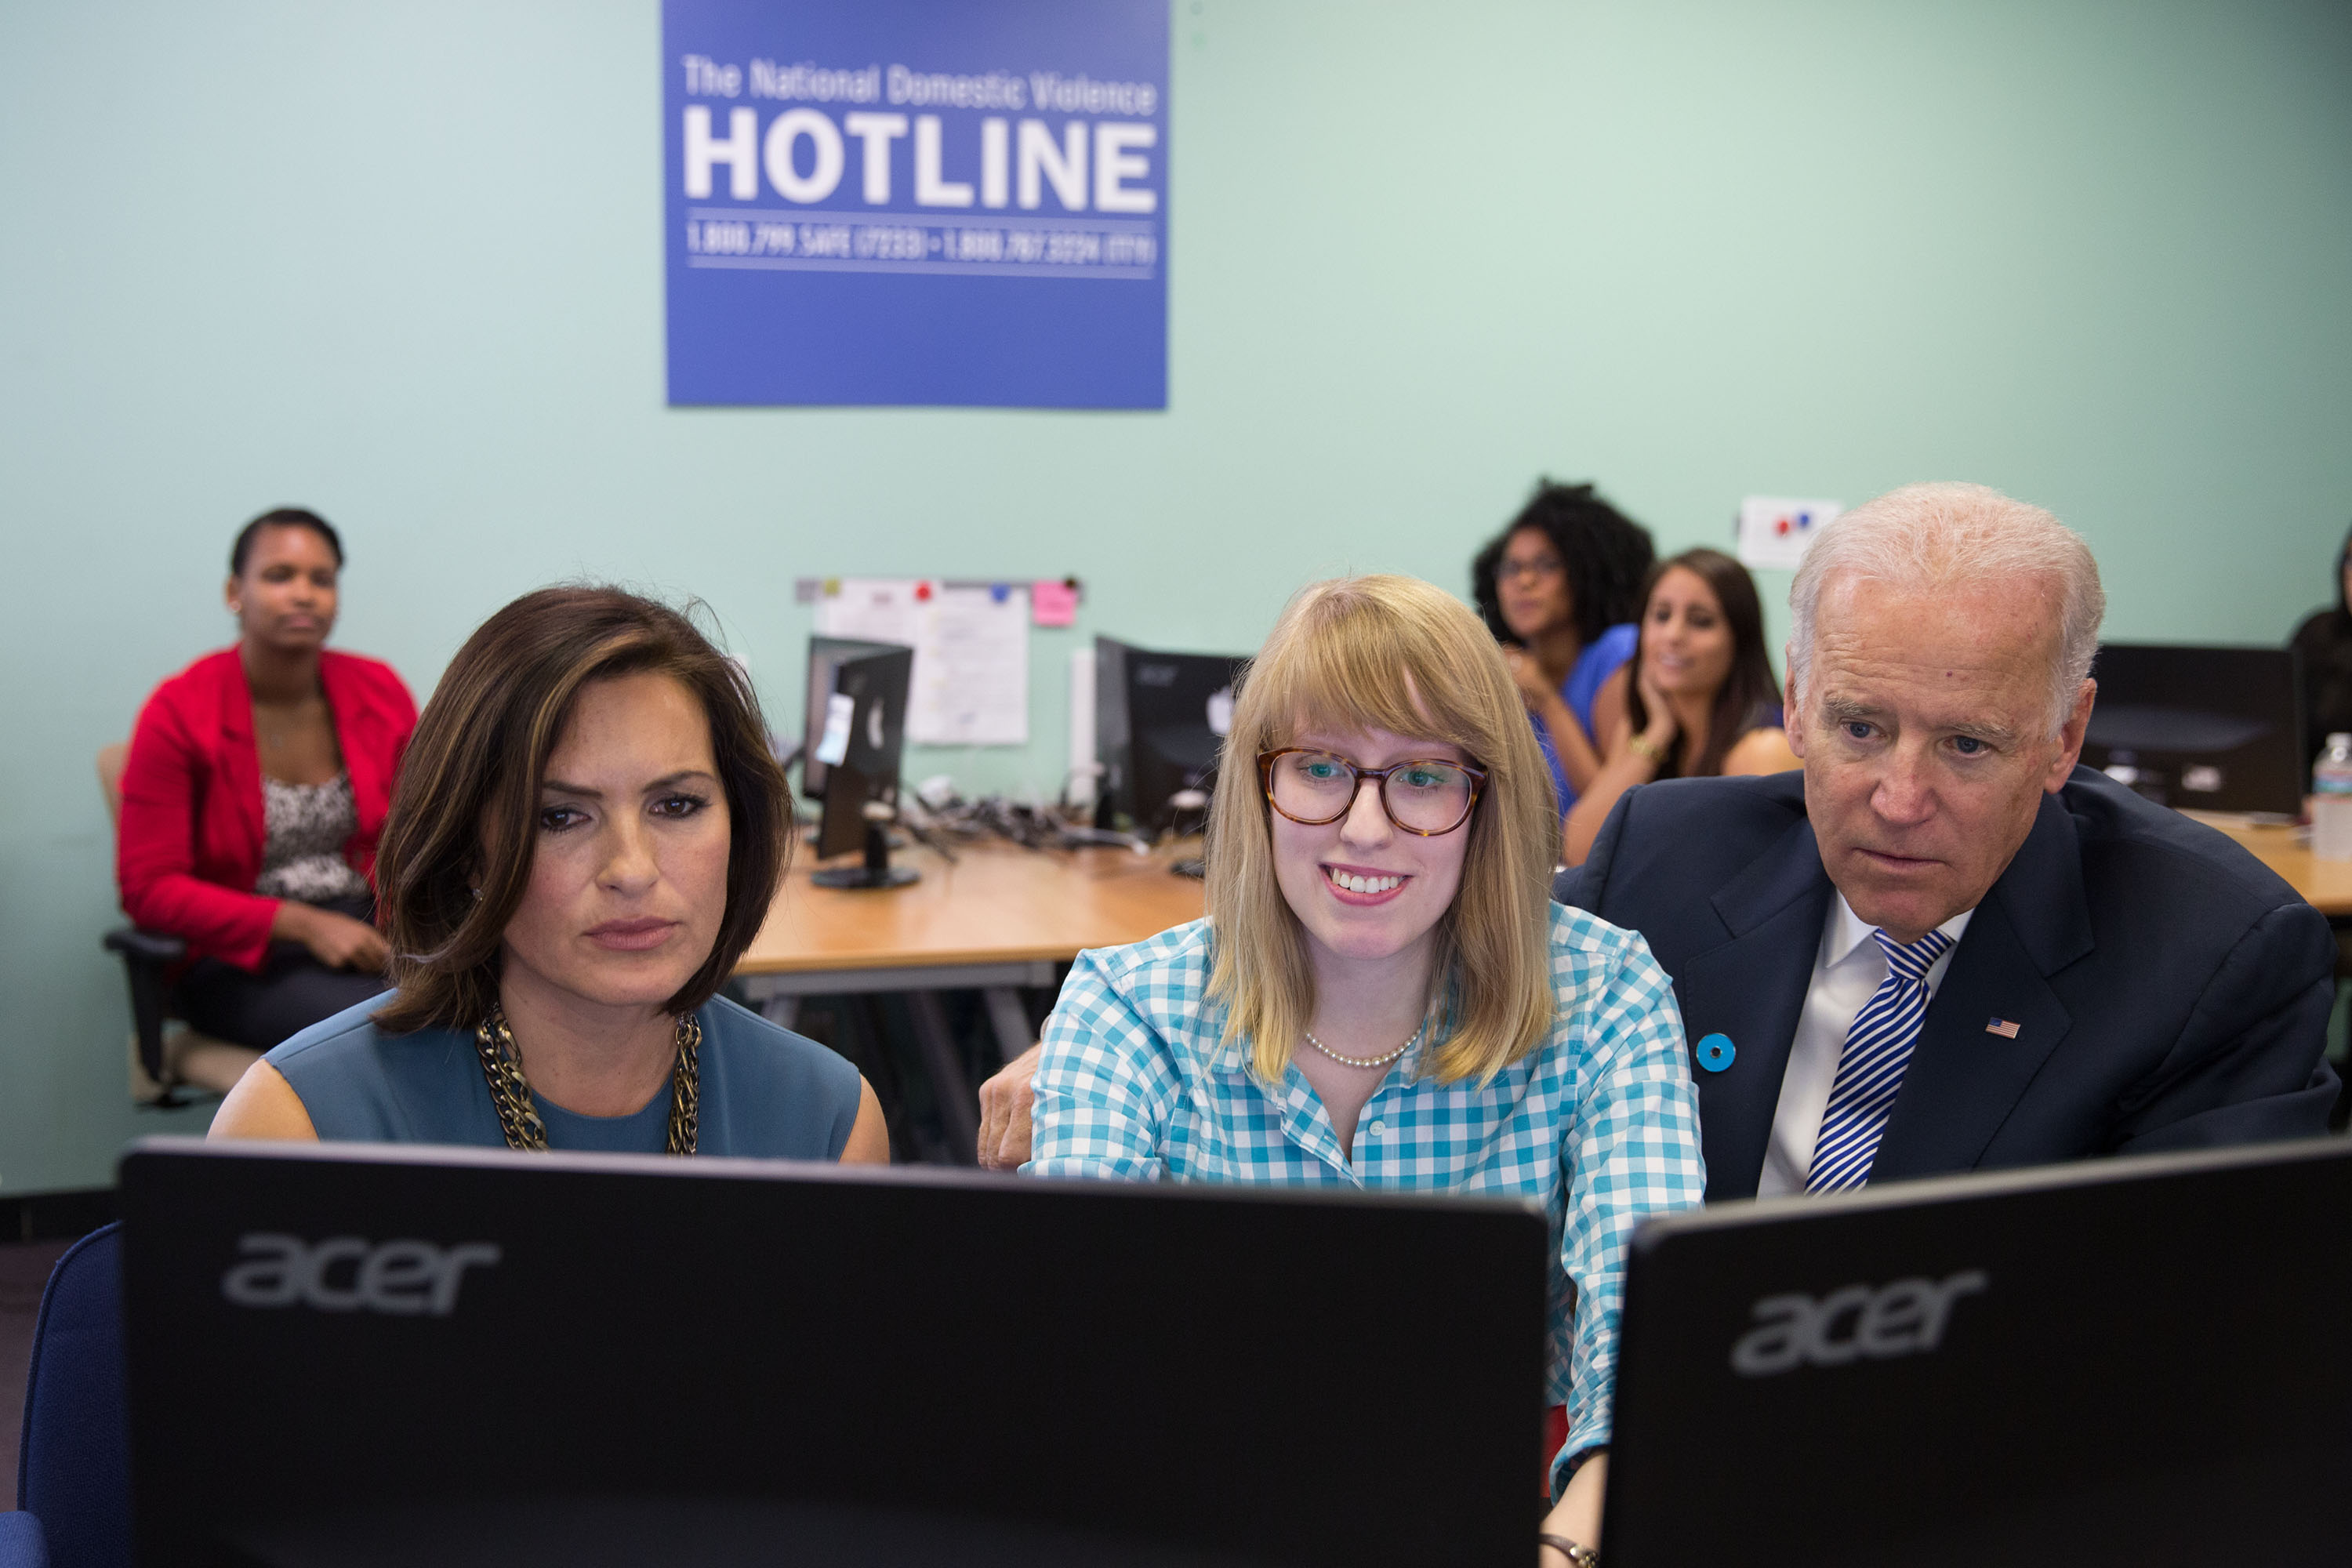 A Hotline advocate shows Vice President Biden and Mariska how the new chat service works.